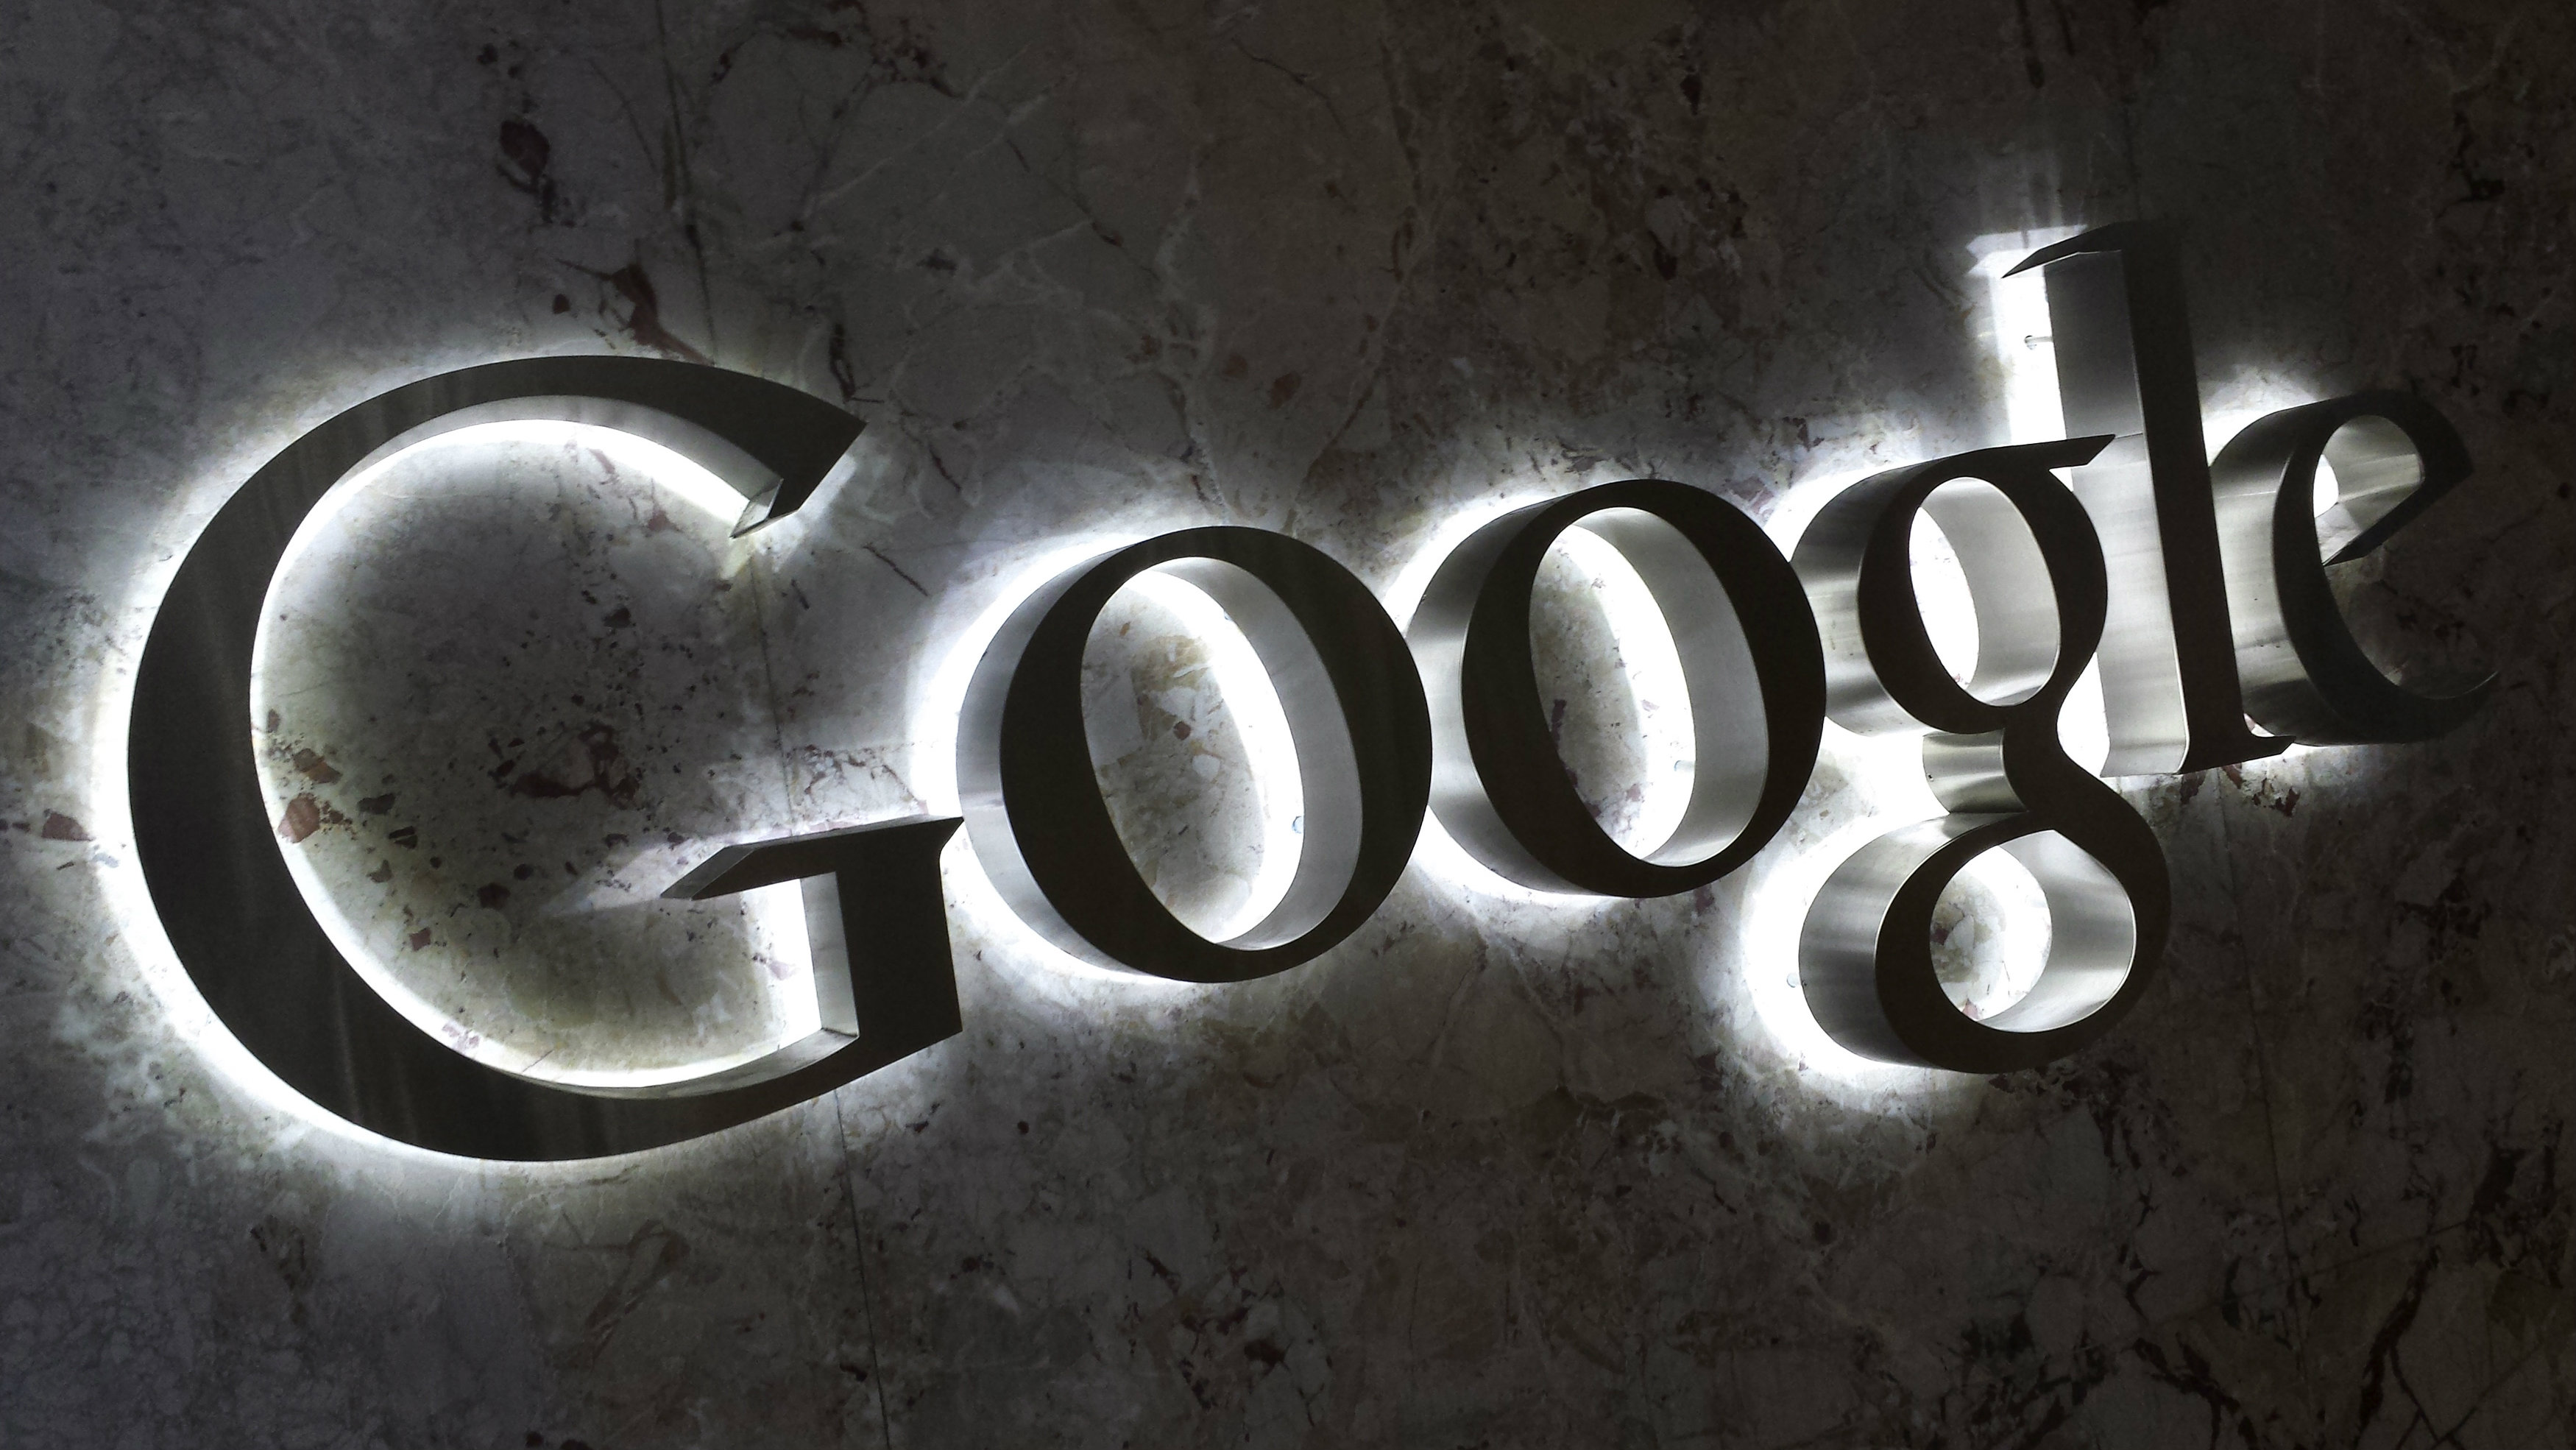 A Google logo is seen at the entrance to the company's offices in Toronto September 5, 2013. REUTERS/Chris Helgren (CANADA - Tags: MEDIA BUSINESS LOGO)